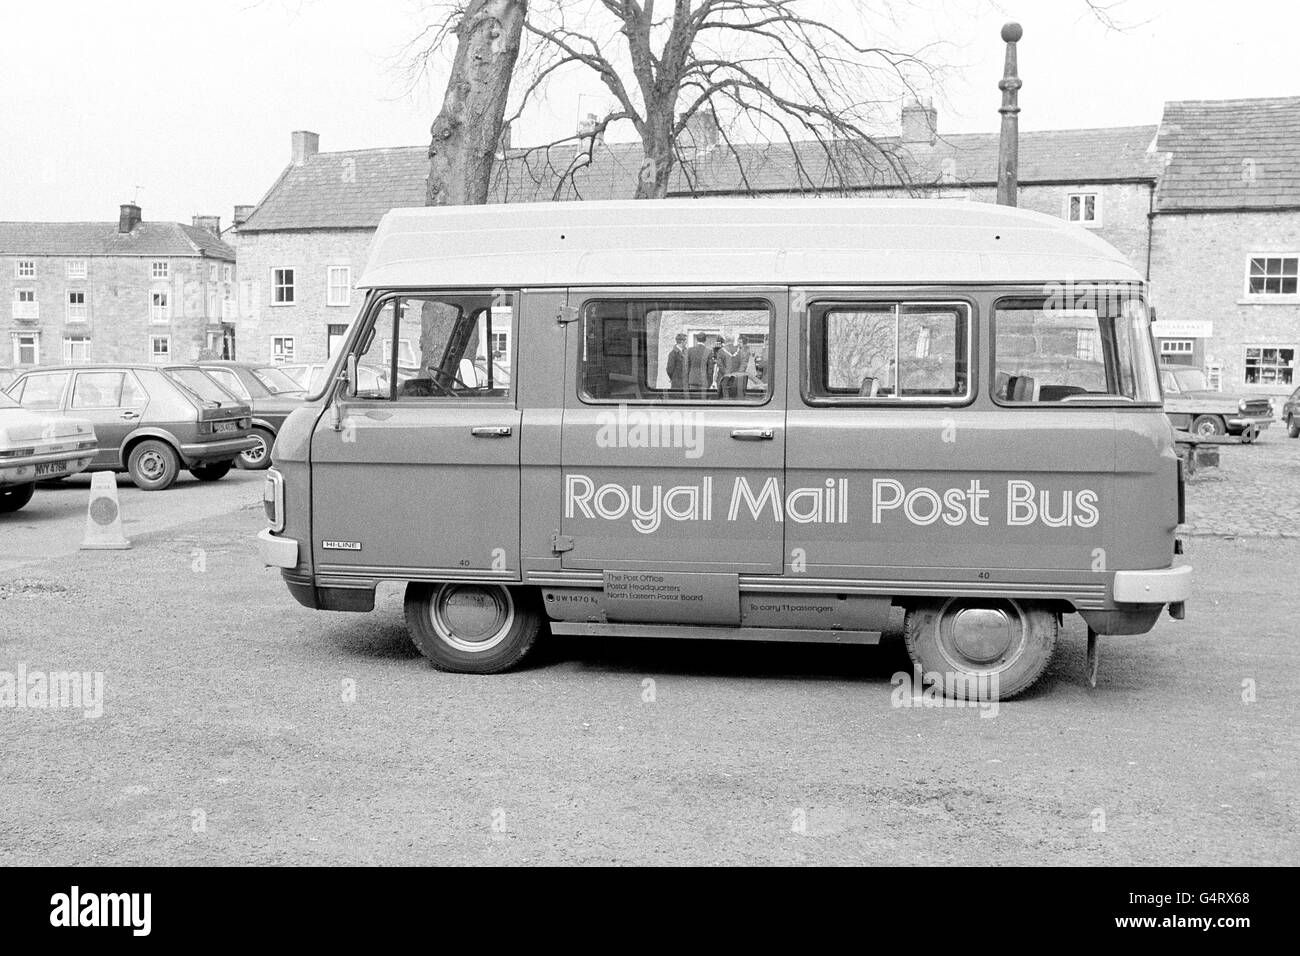 British Postal Service - Mail Stagecoach and Postbus - North Yorkshire - Stock Image